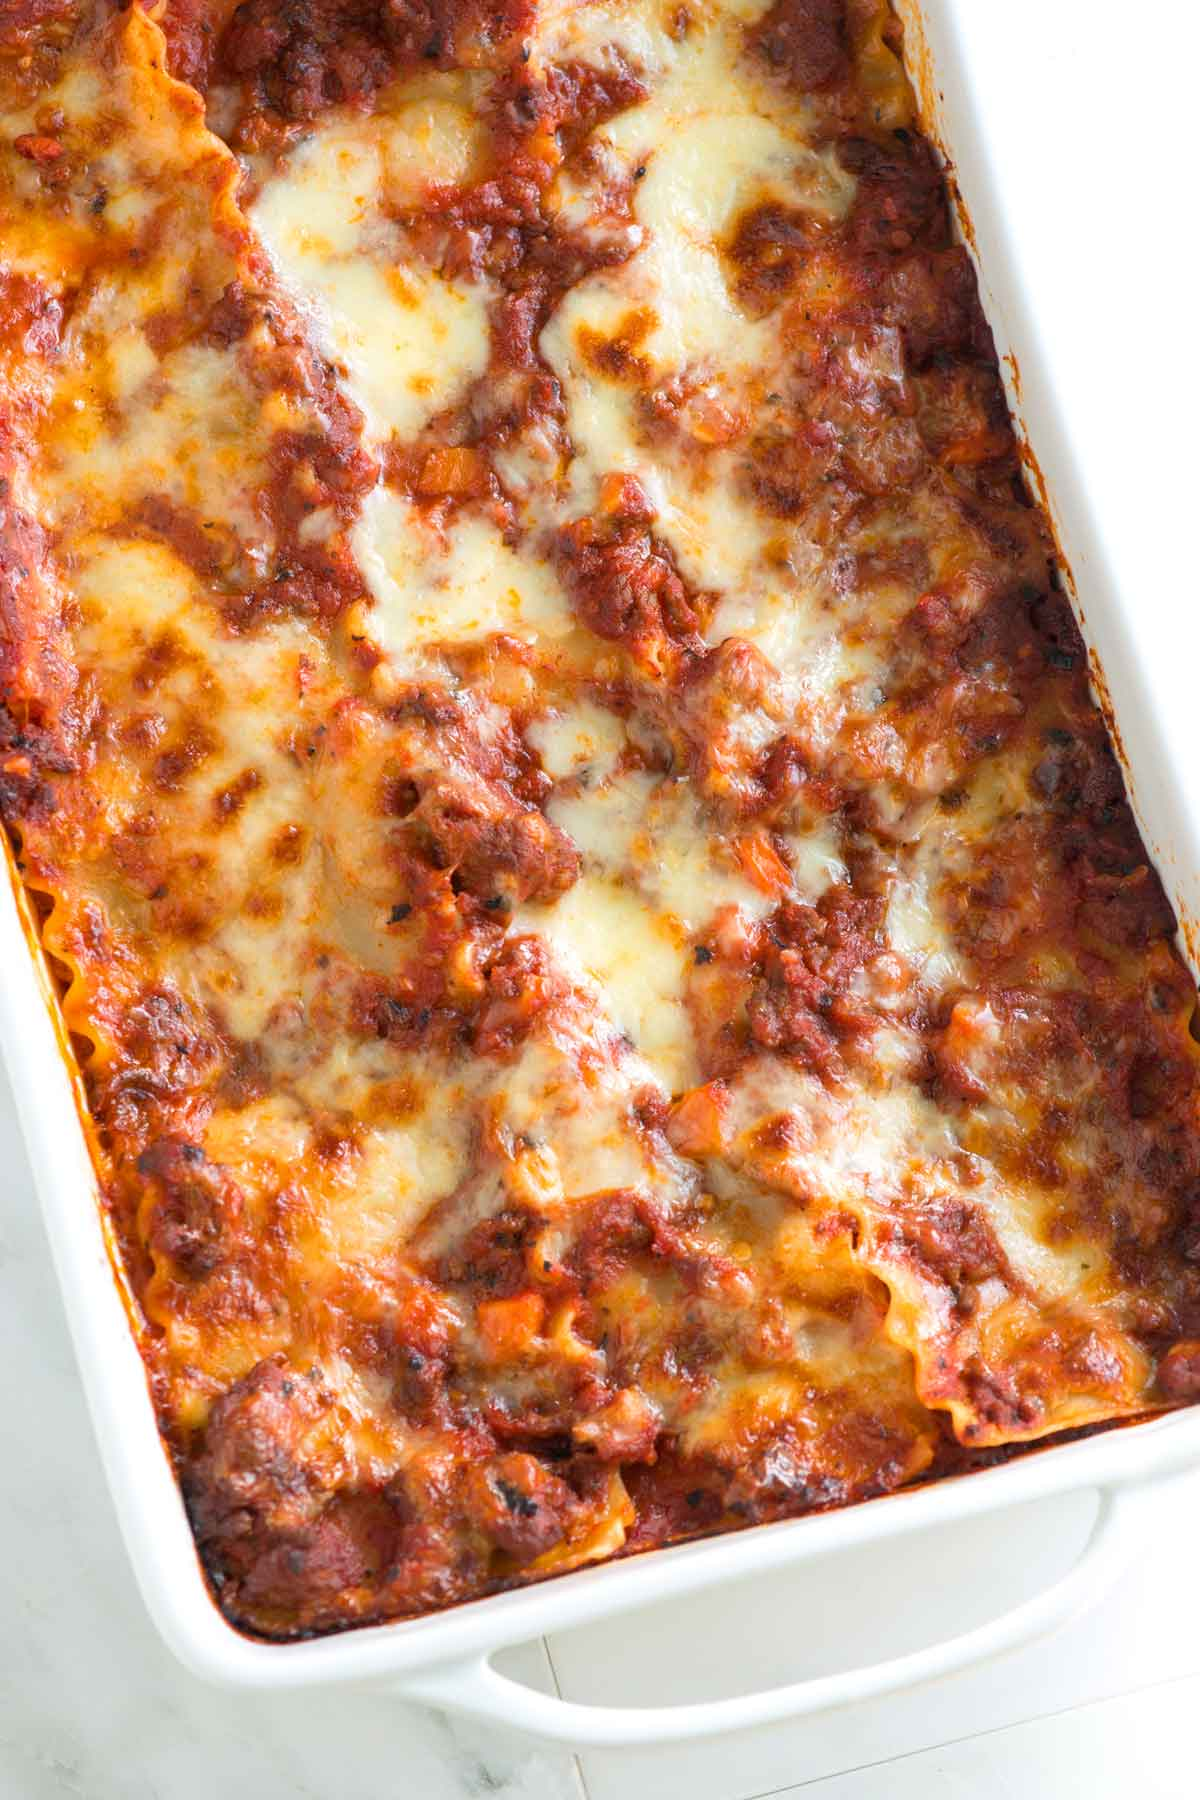 A meaty and incredibly delicious lasagna recipe with Italian sausage, ground beef, and cheese. Plus, our tips for making it in advance.